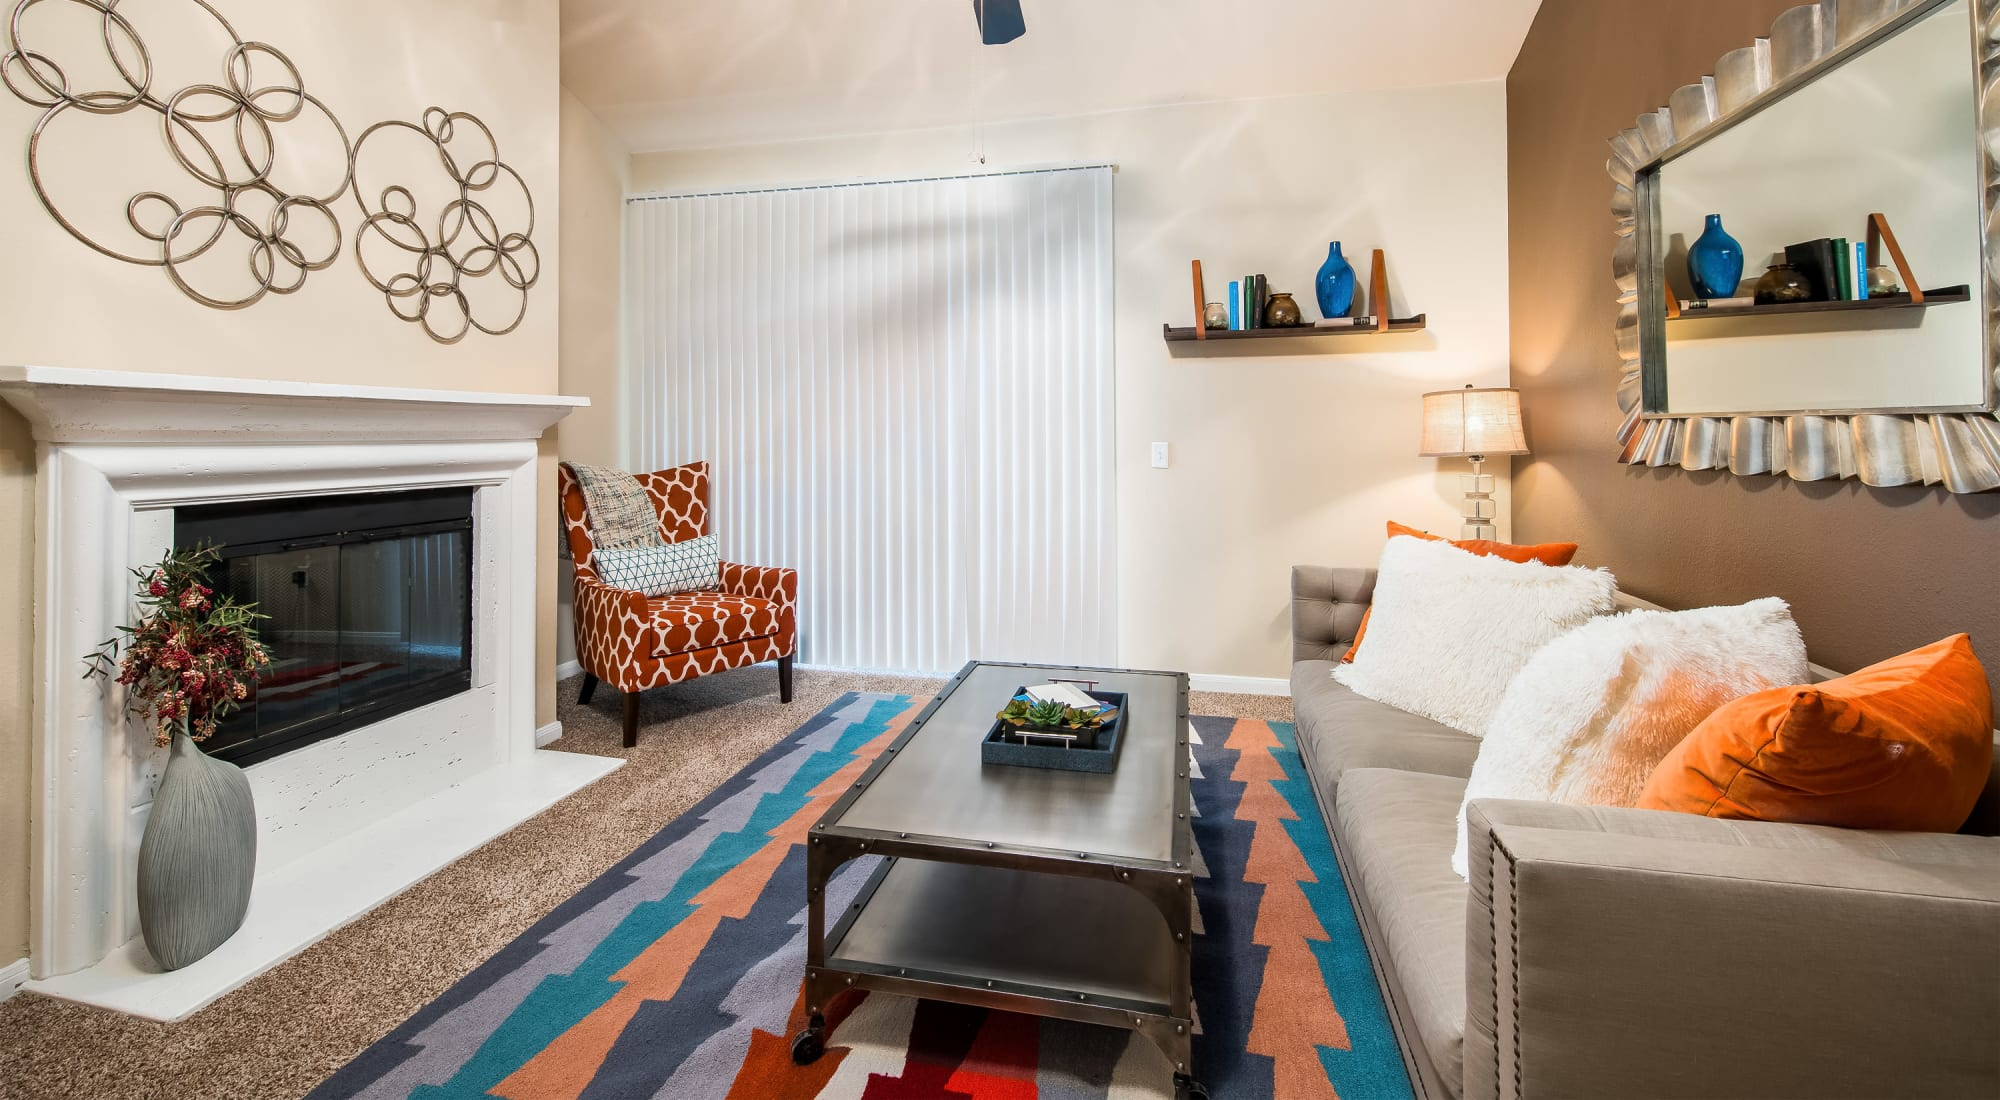 Apply to live at Reserve at Pebble Creek in Plano, Texas